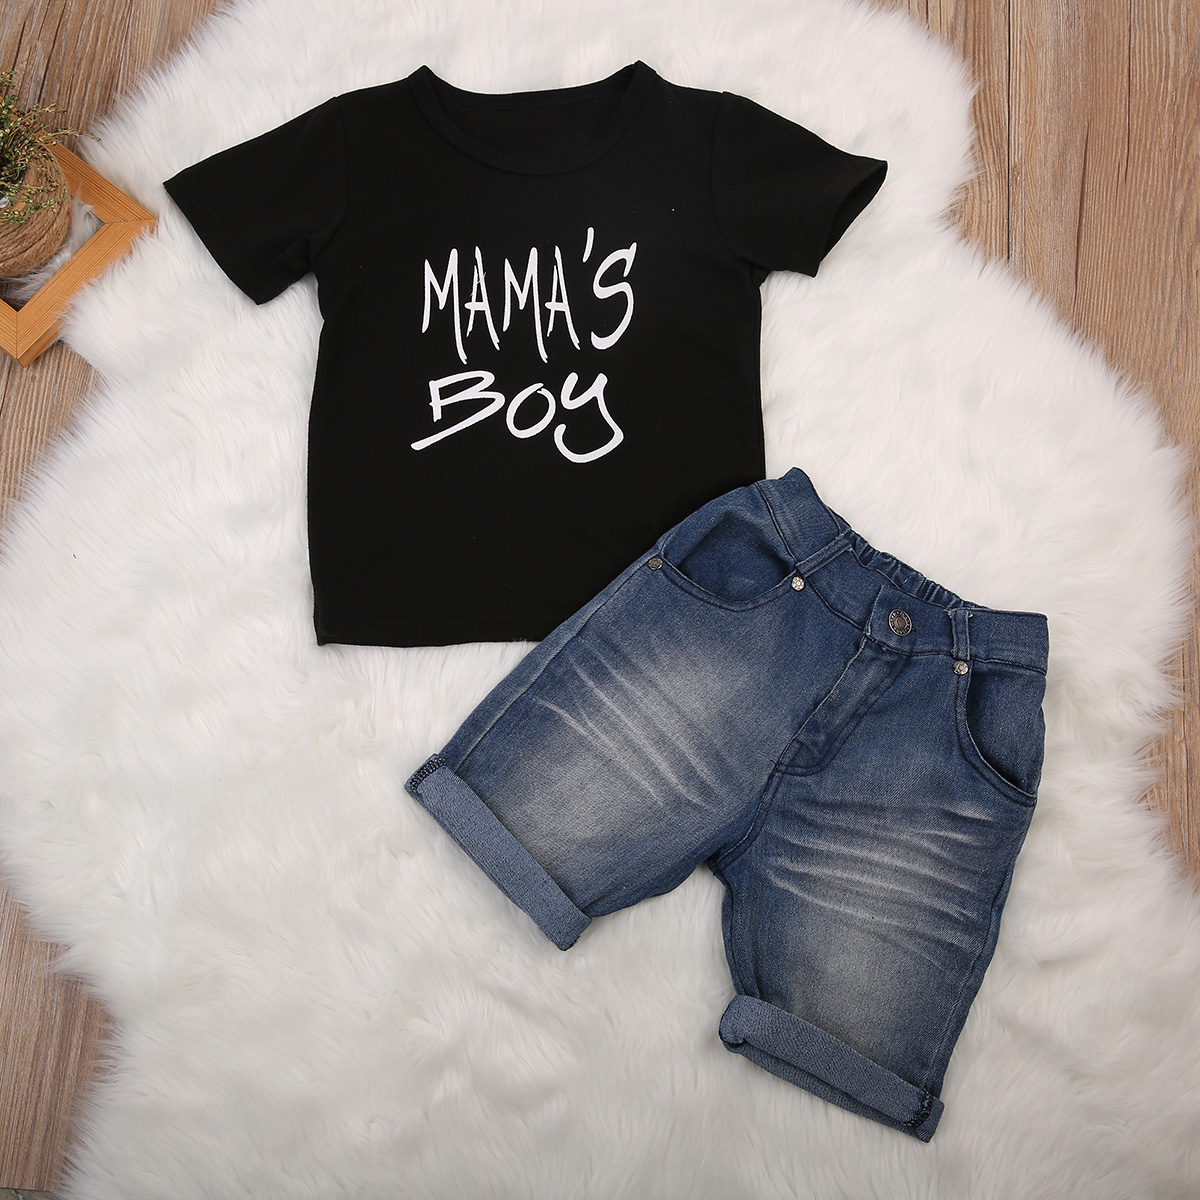 Pudcoco 2017 New Mama's Boy Kids Baby Boy Clothing Set Casual T Shirts Top Denim Shorts Pants Toddler Boys 2PCS Summer Outfits toddler boy summer cool outfit kids baby boys casual star t shirt tops harem pants 2 pcs outfits set 2 7y clothing